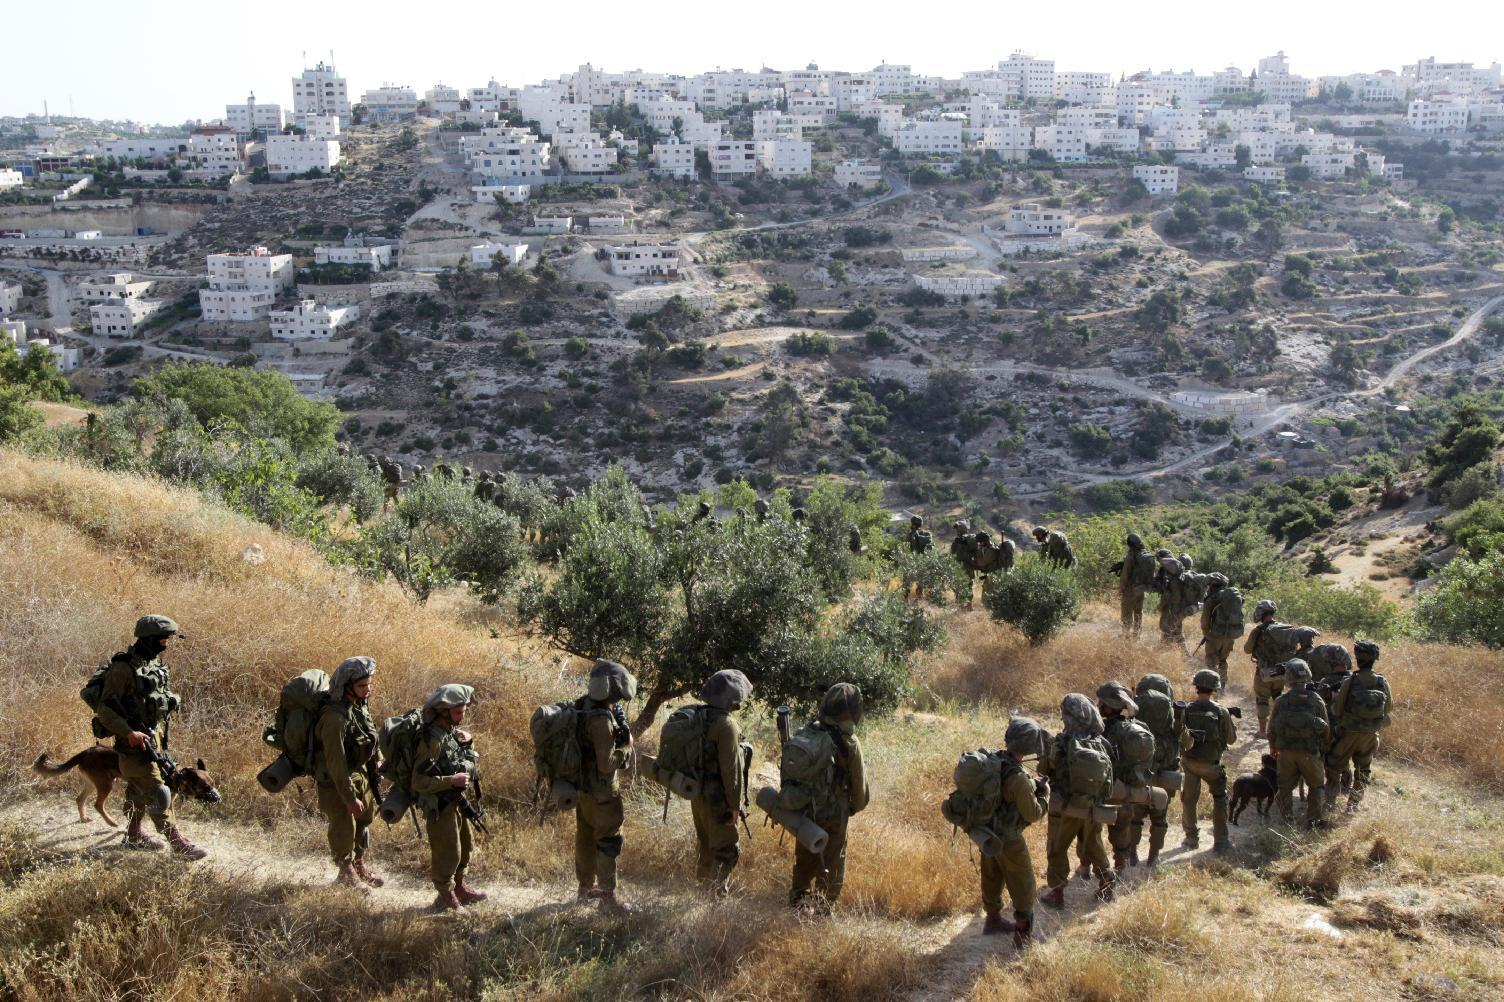 Israeli soldiers search for the missing teenagers during an operation in the West Bank town of Hebron, on June 17, 2014 (AFP Photo/Hazem Bader)